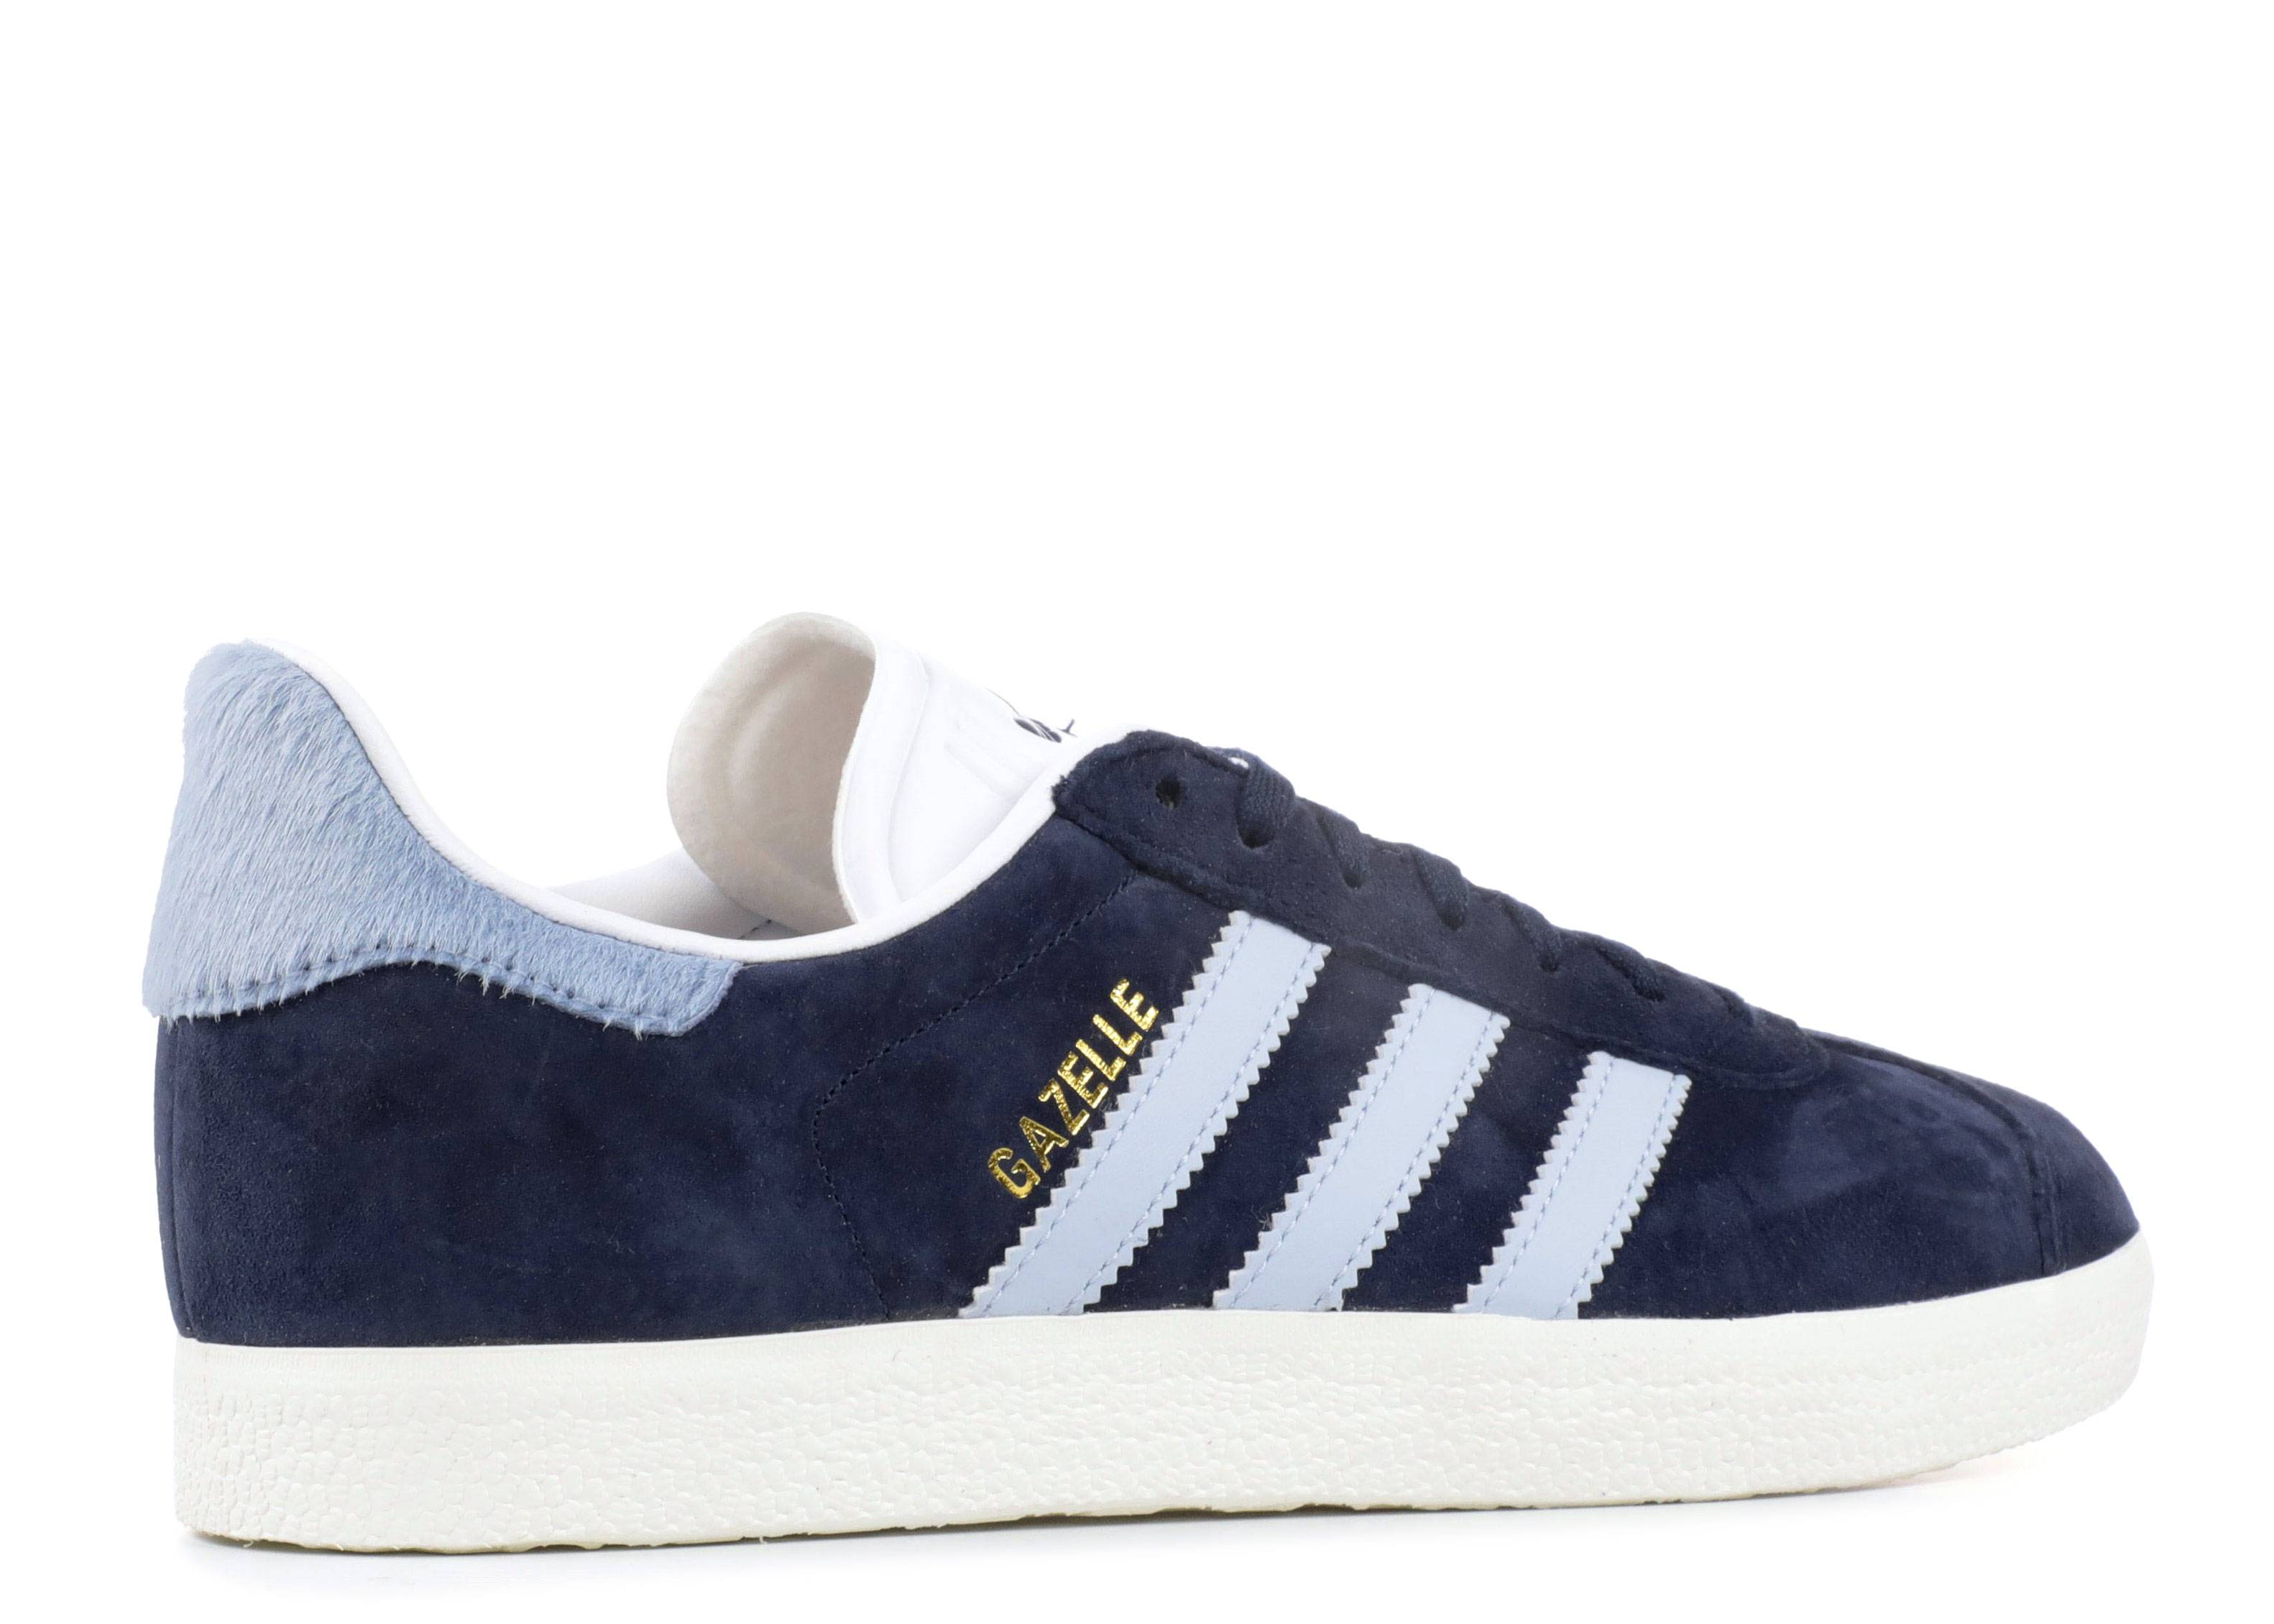 huge selection of 59ae6 02c67 BY9356 Womens Adidas Originals Gazelle W Christmas Supplies